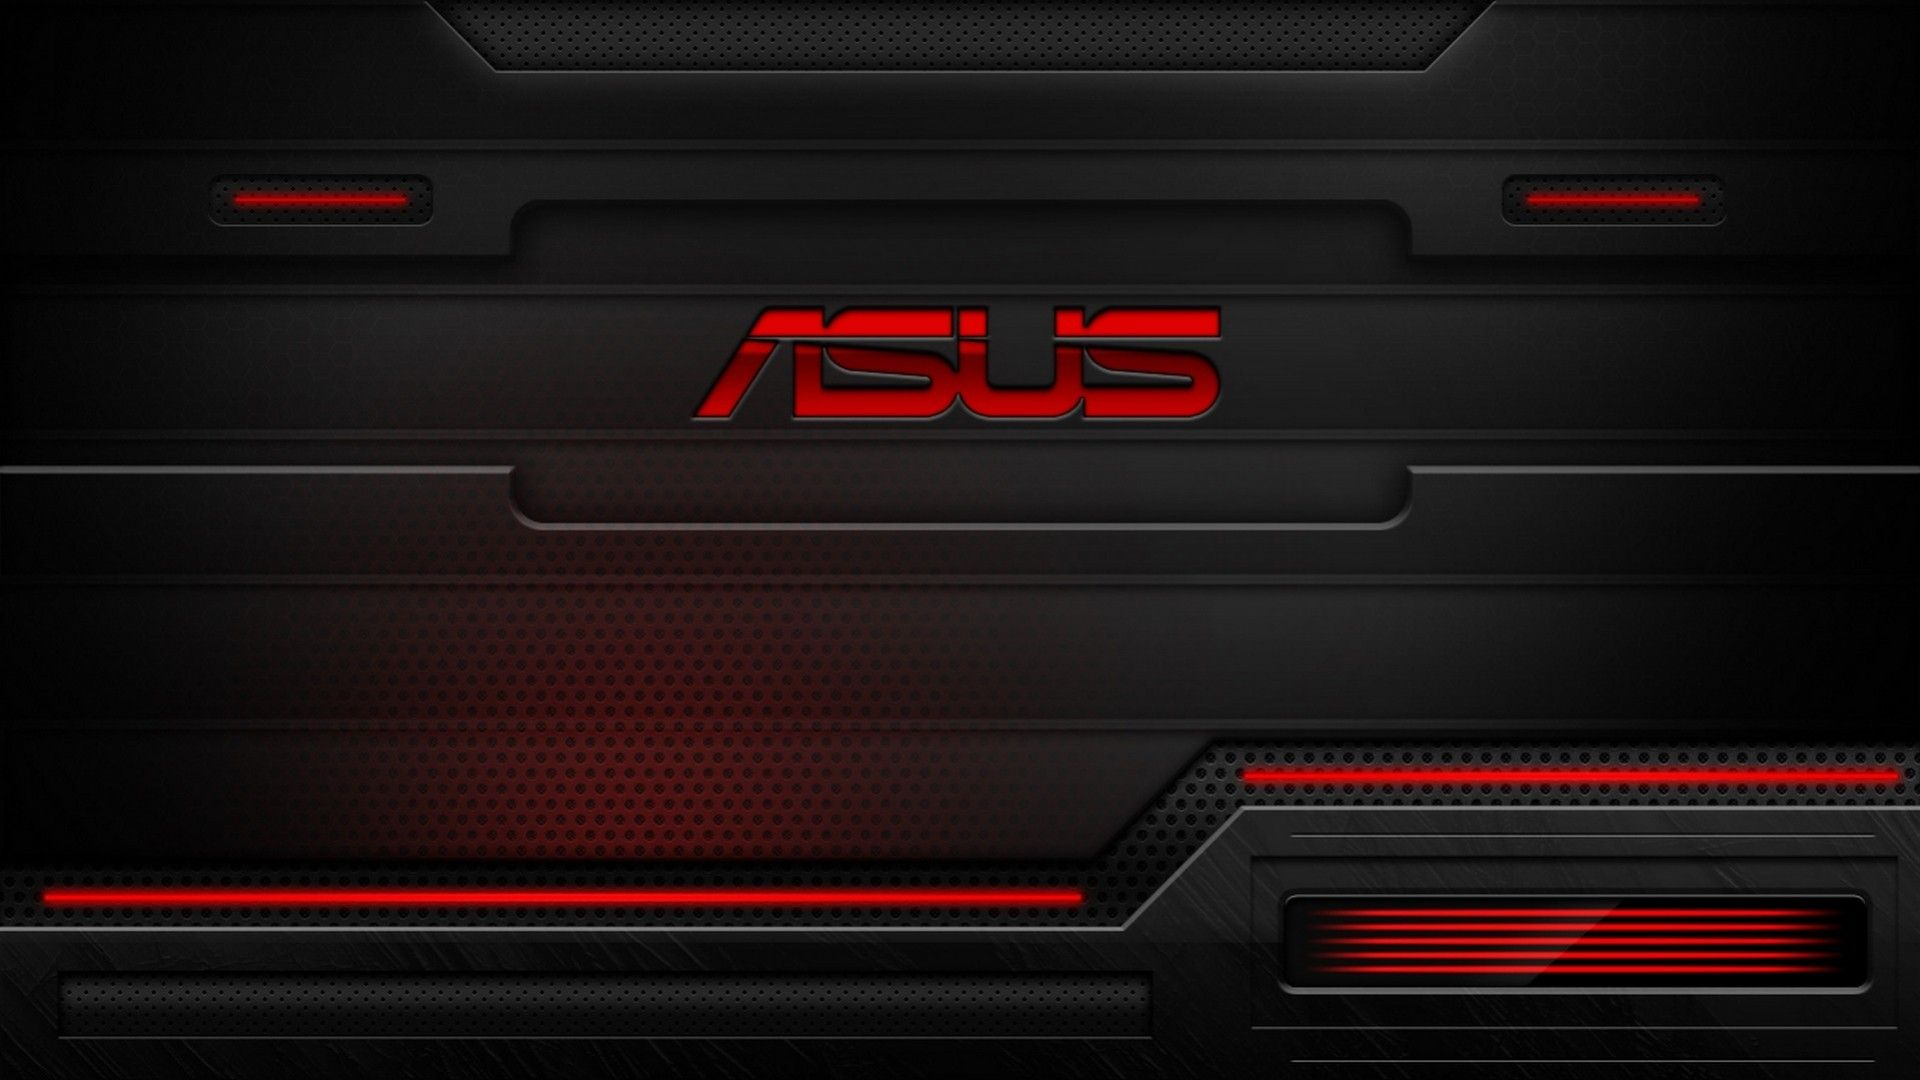 Asus Backgrounds, Compatible - PC, Mobile, Gadgets| 1920x1080 px